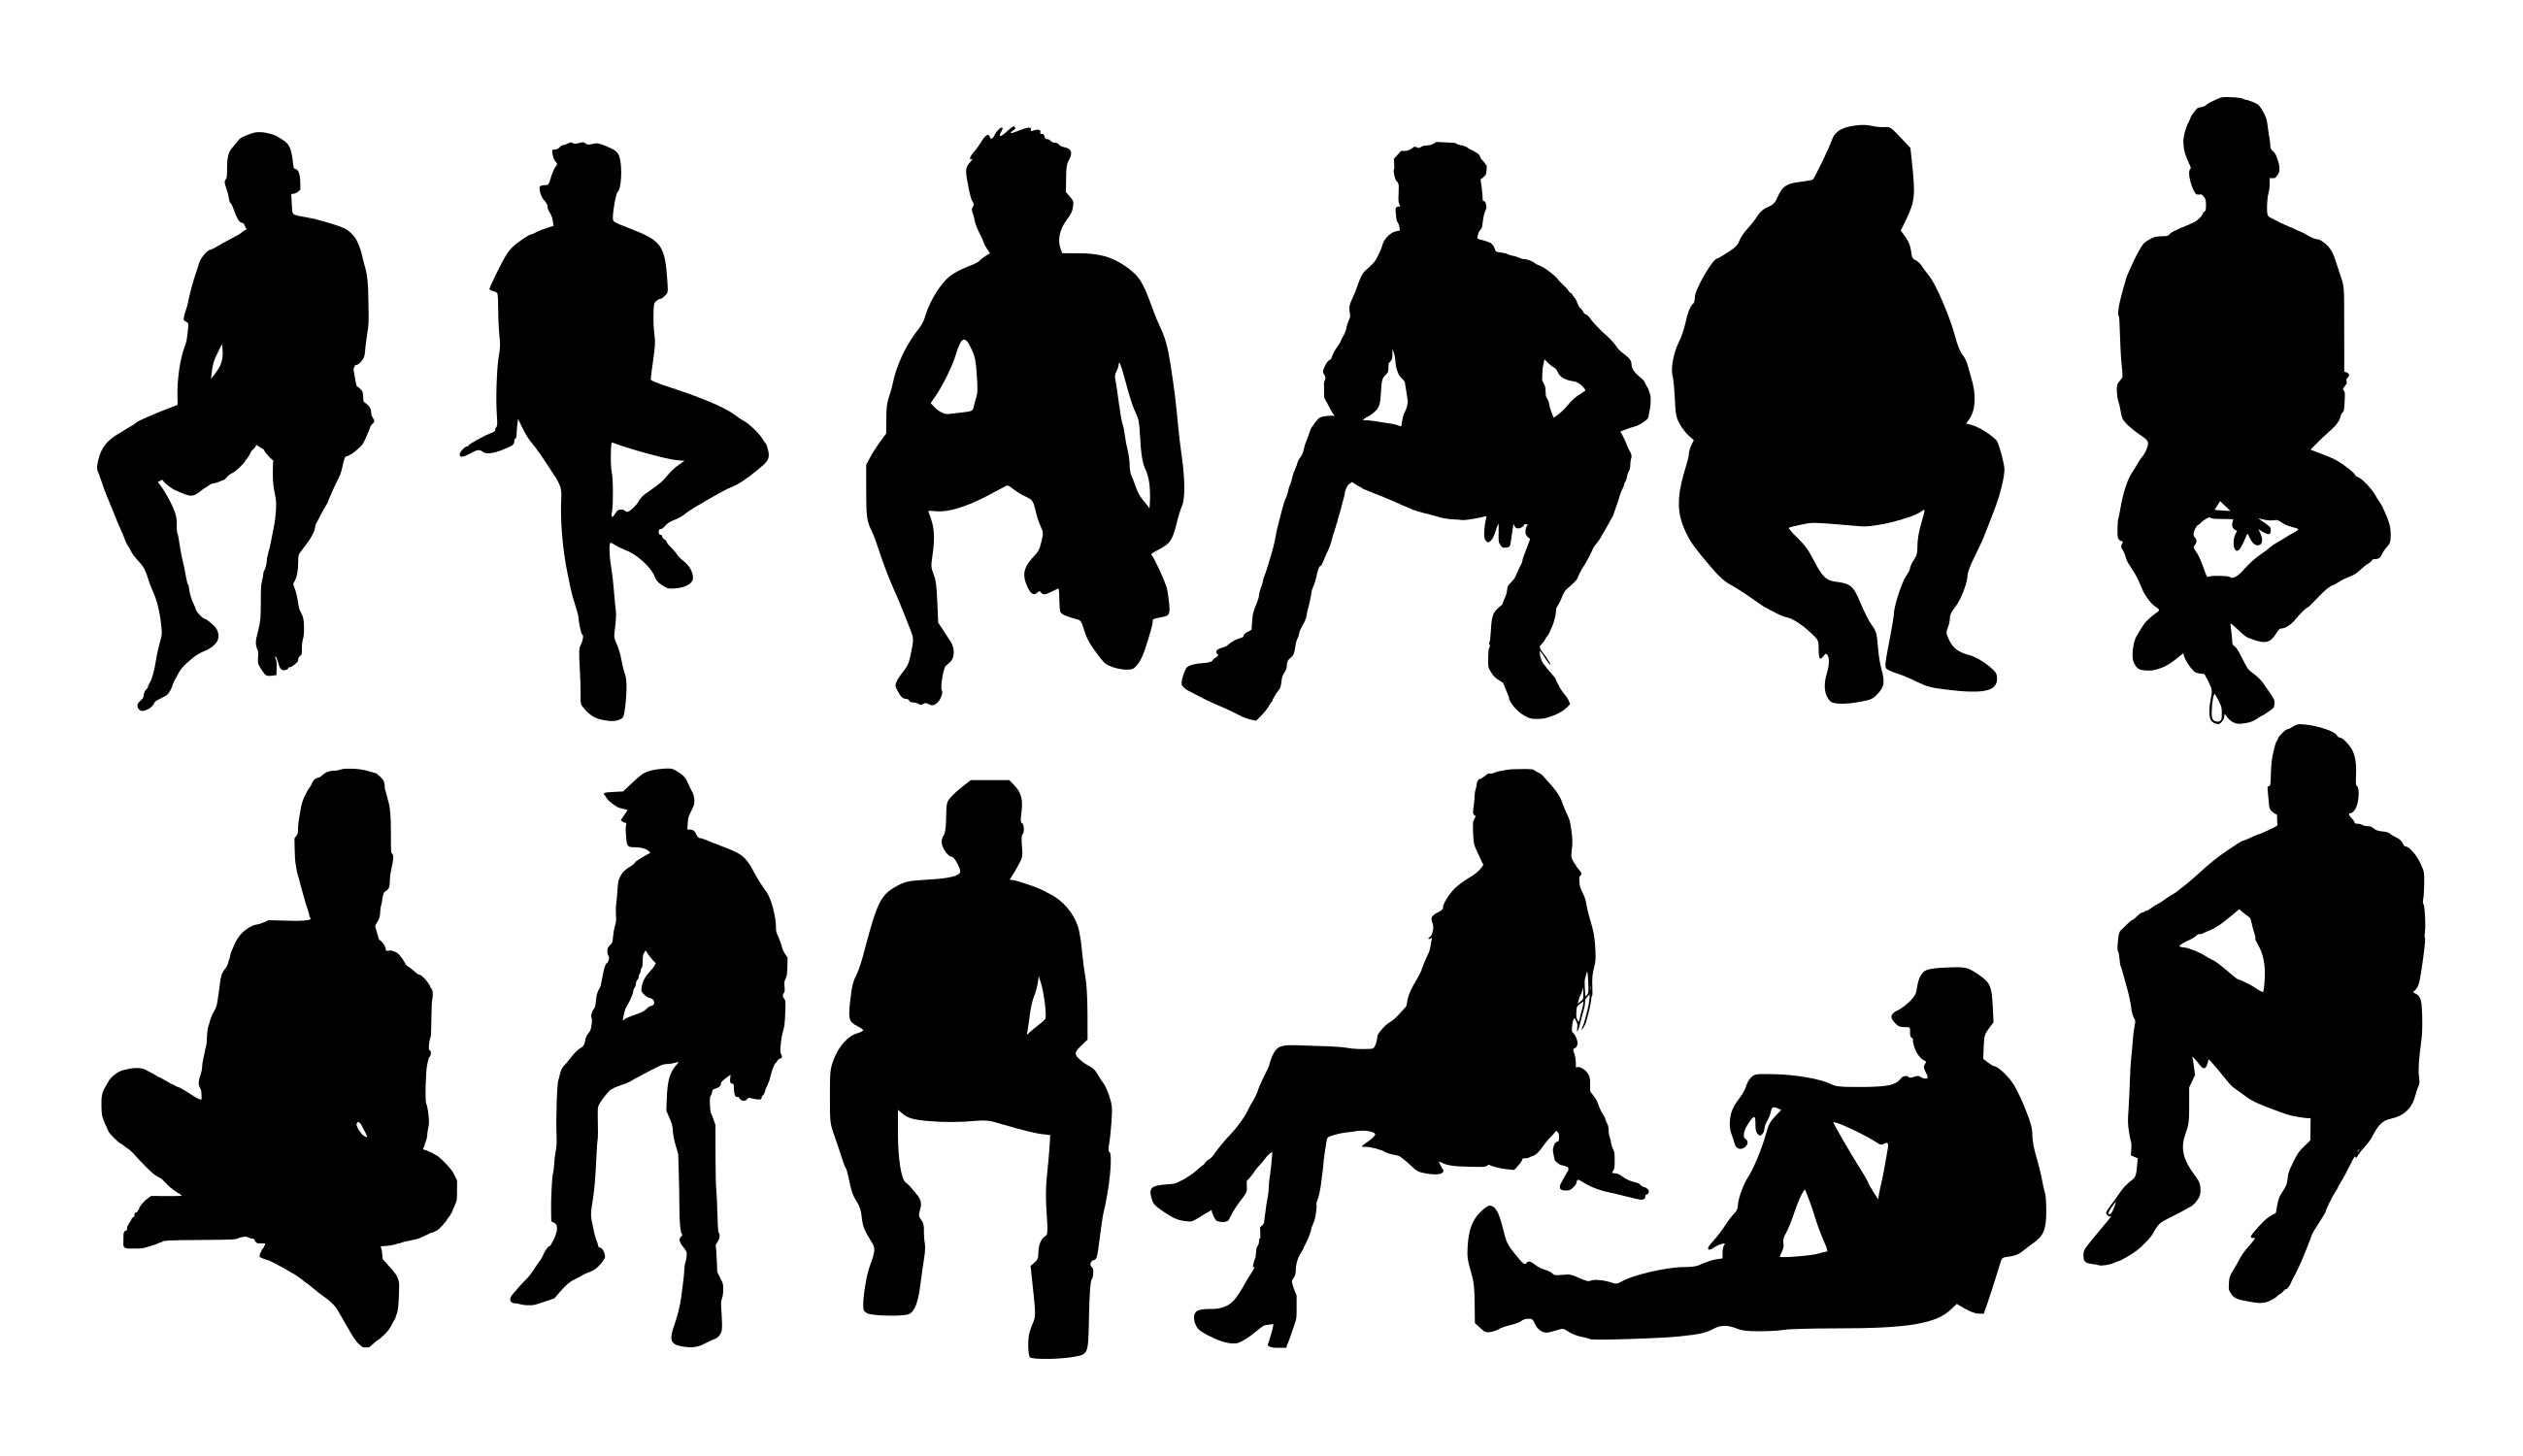 12 People Sitting Silhouette Png Transparent Onlygfx Com